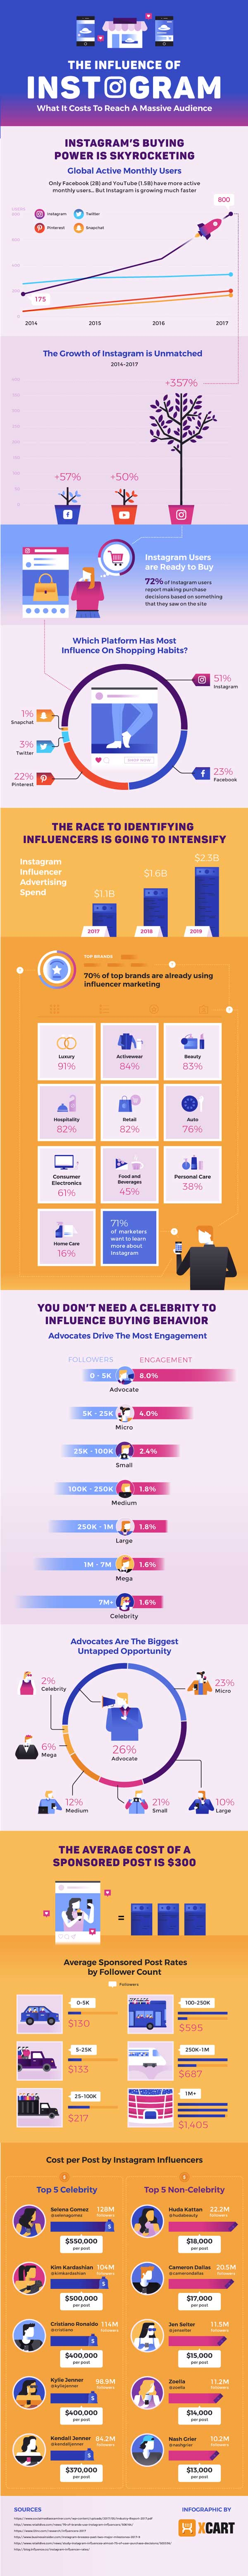 influence-instagram-infographic.jpg